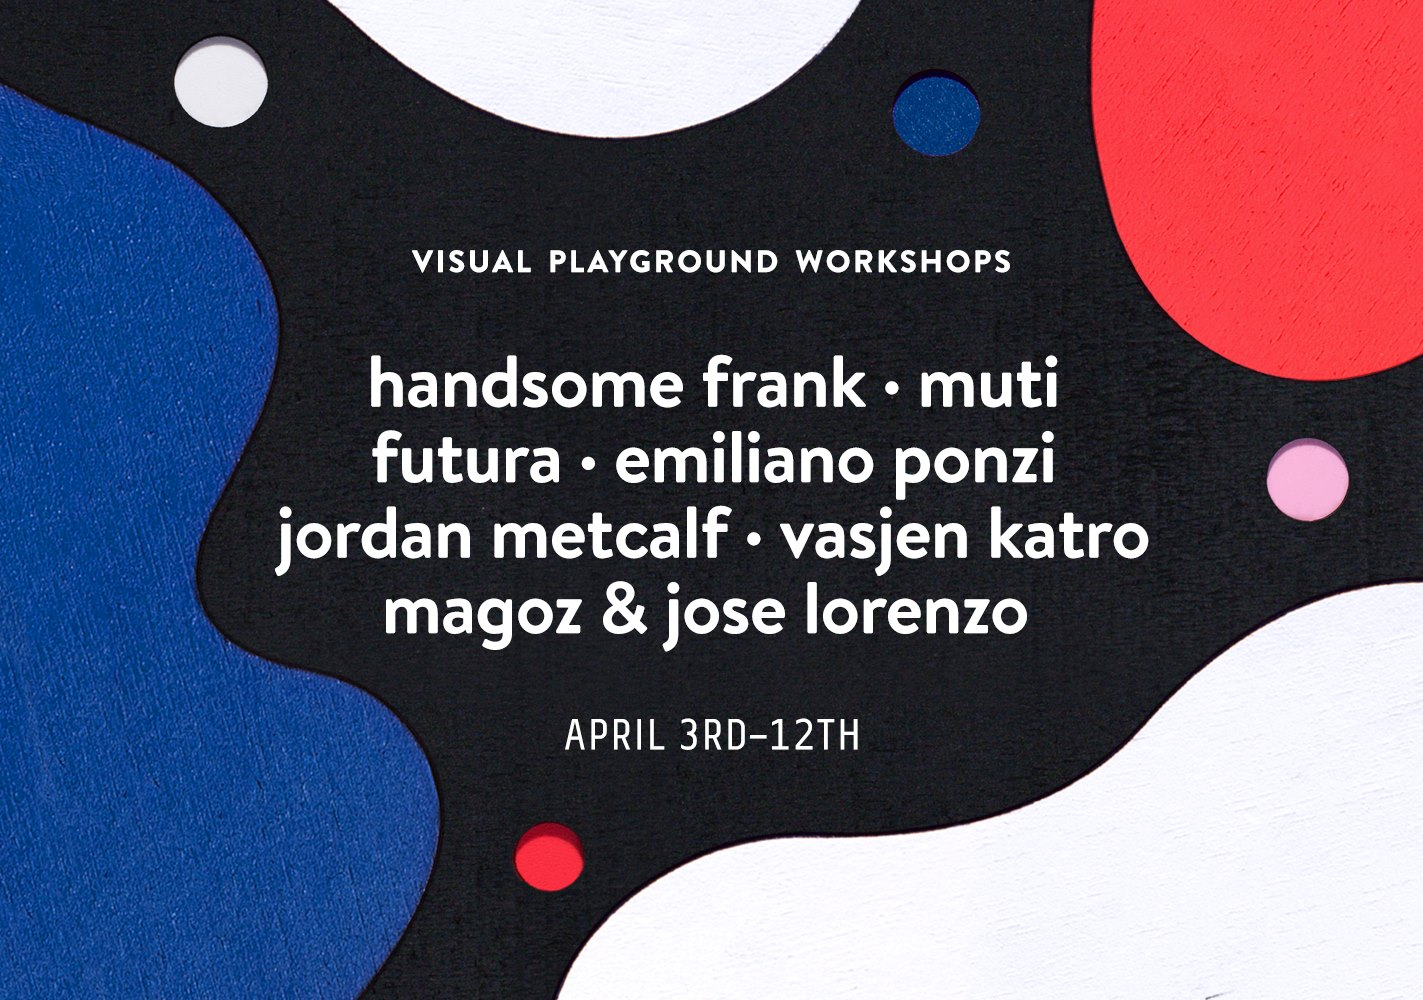 Visual Playground Workshops 2019